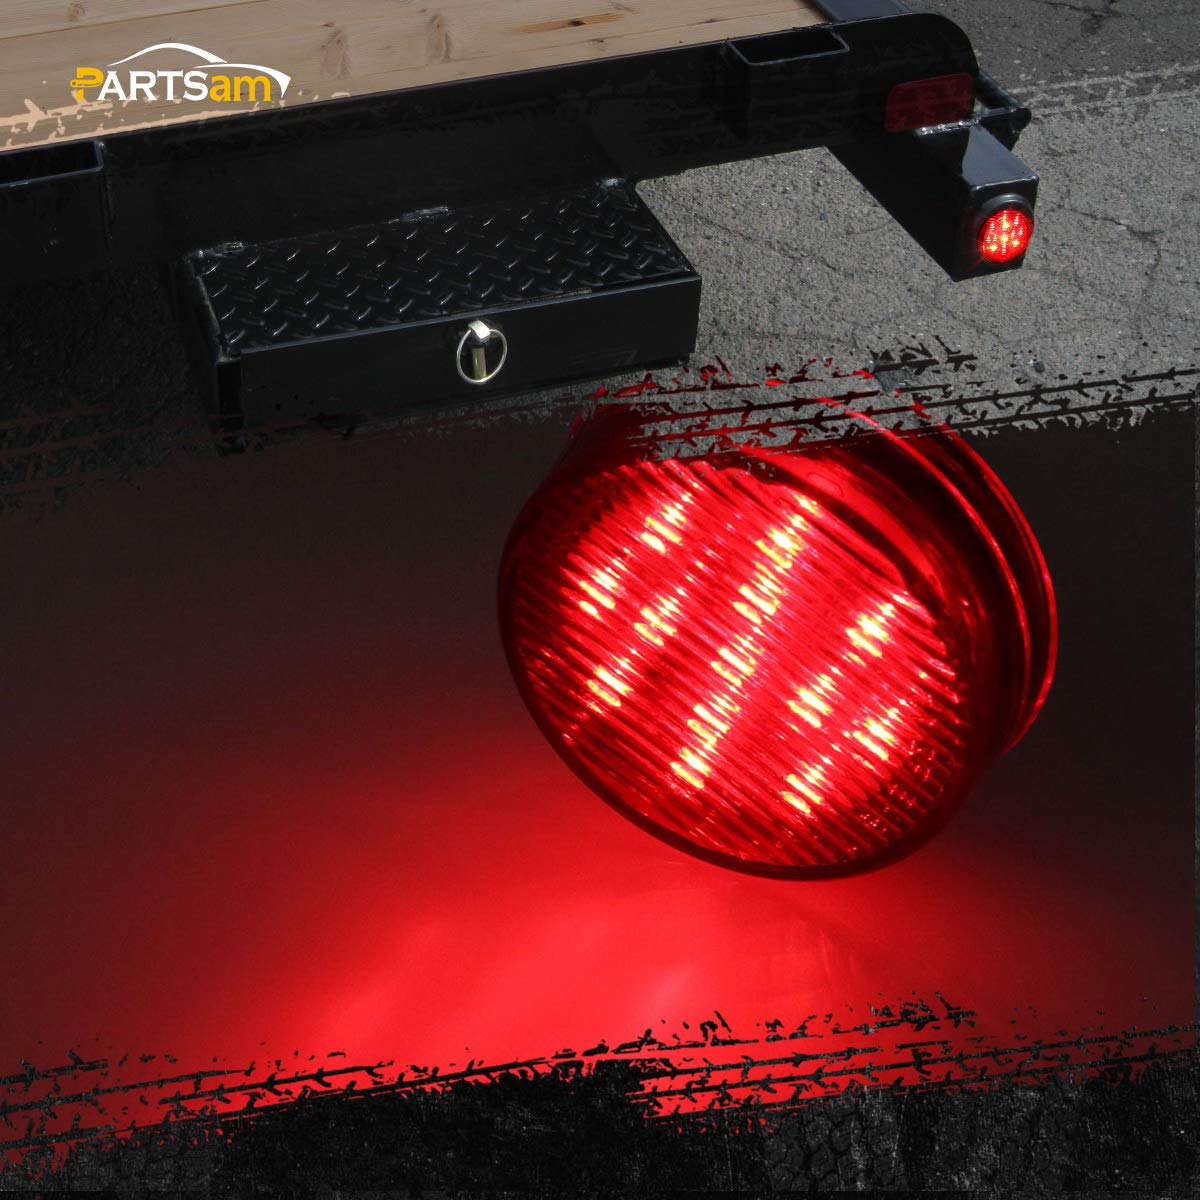 2.5 Round Led Trailer Lights 2.5 Round Led Marker Lights Air Breather Bar Lights Partsam 10Pcs 2.5 Inch Round Led and Side Marker Lights 13 Diodes w Reflectors Waterproof 5Amber+5Red